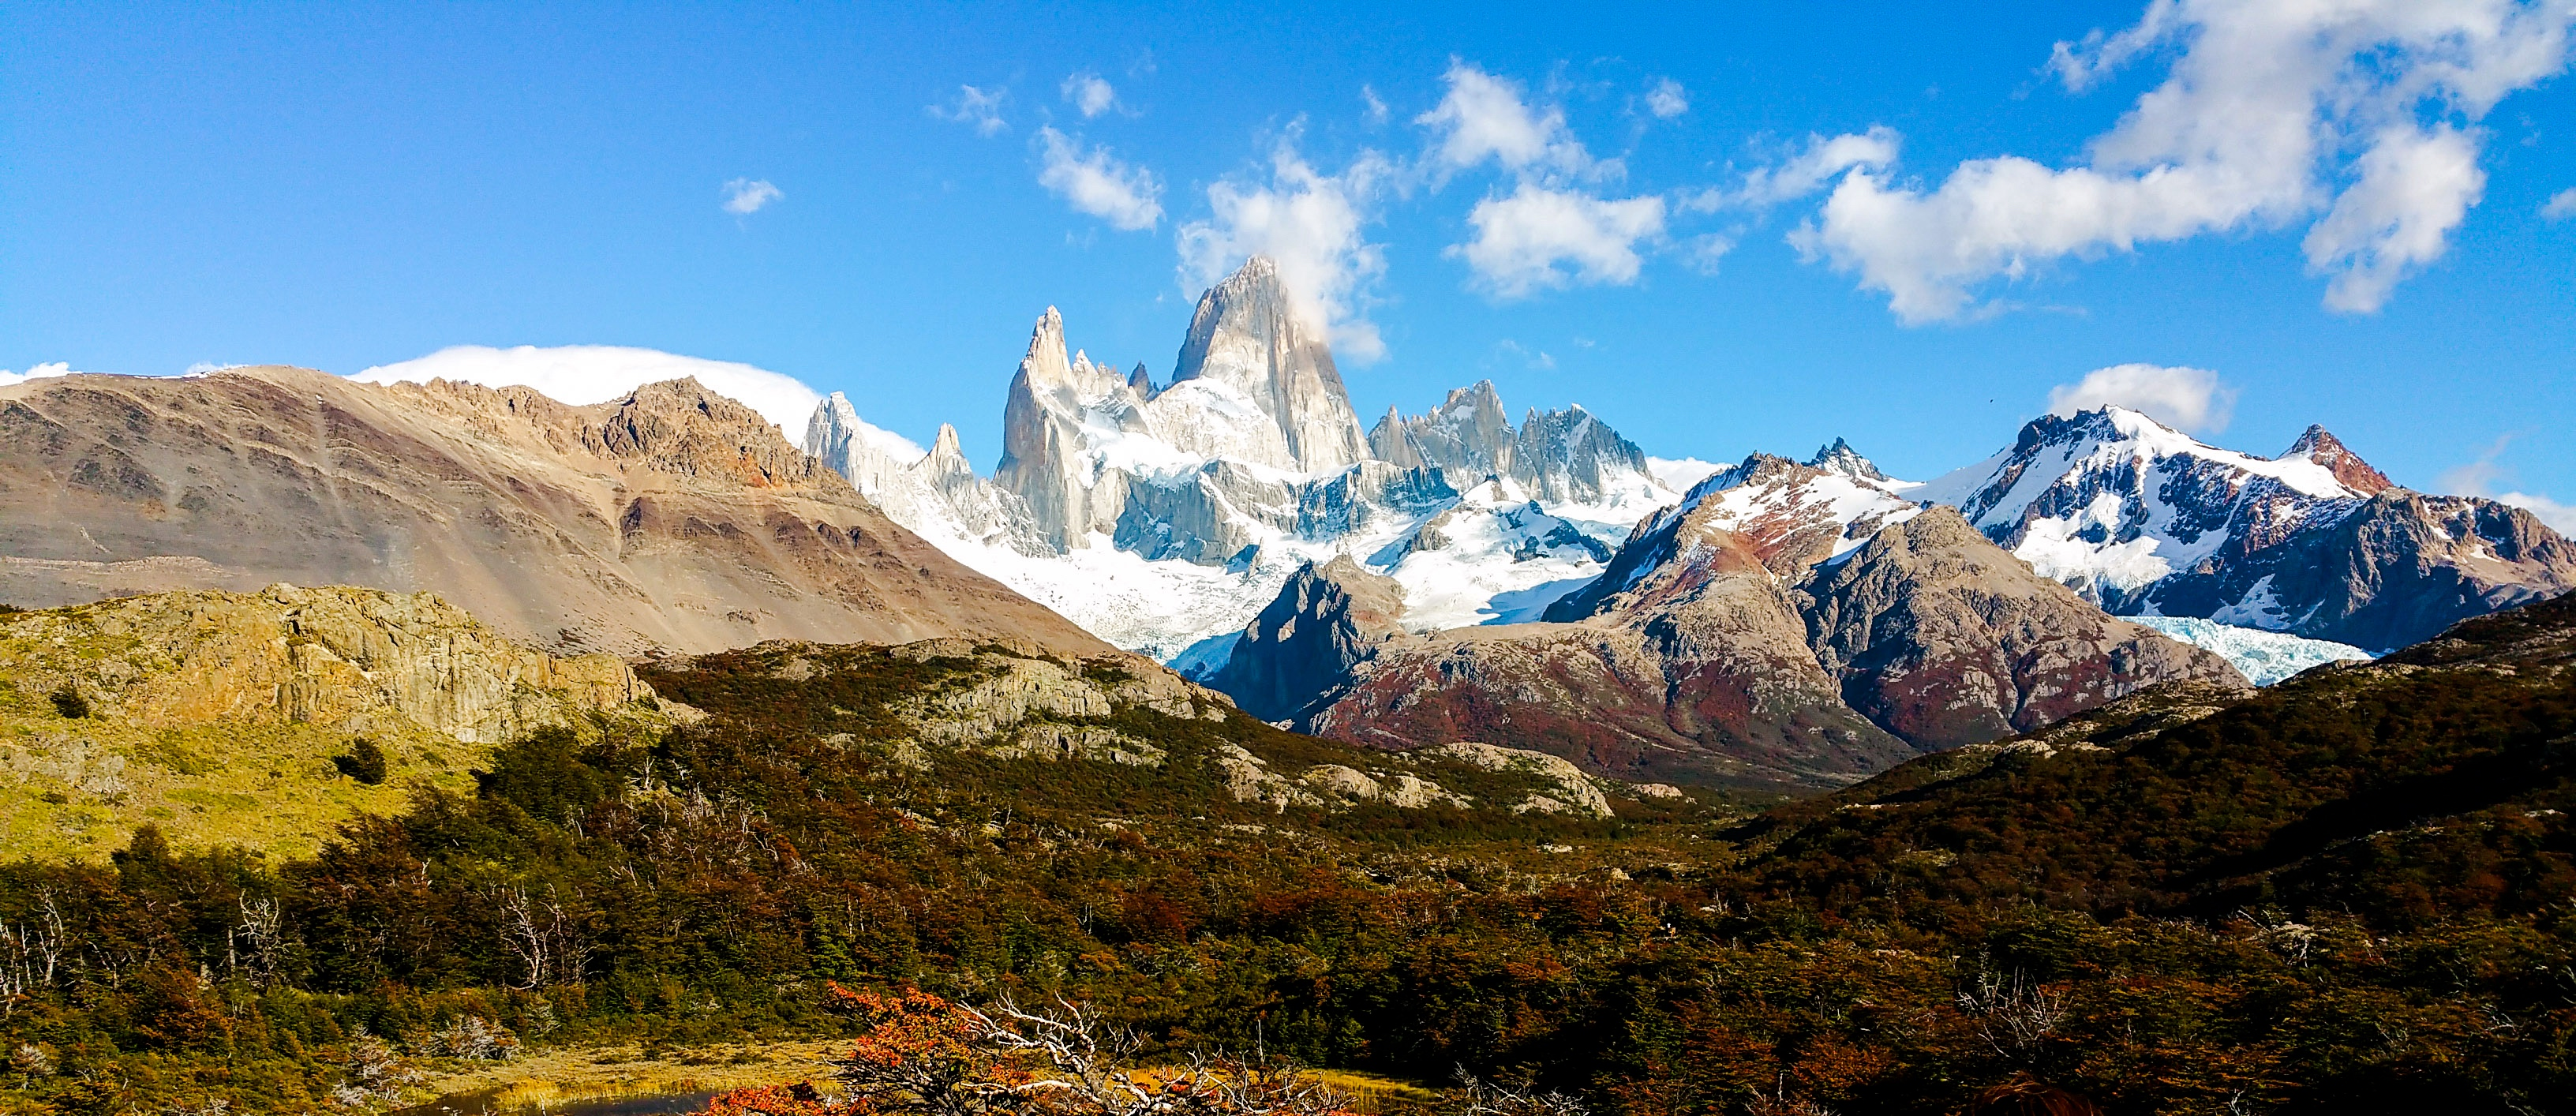 Fighting Forceful Winds at Mount Fitz Roy